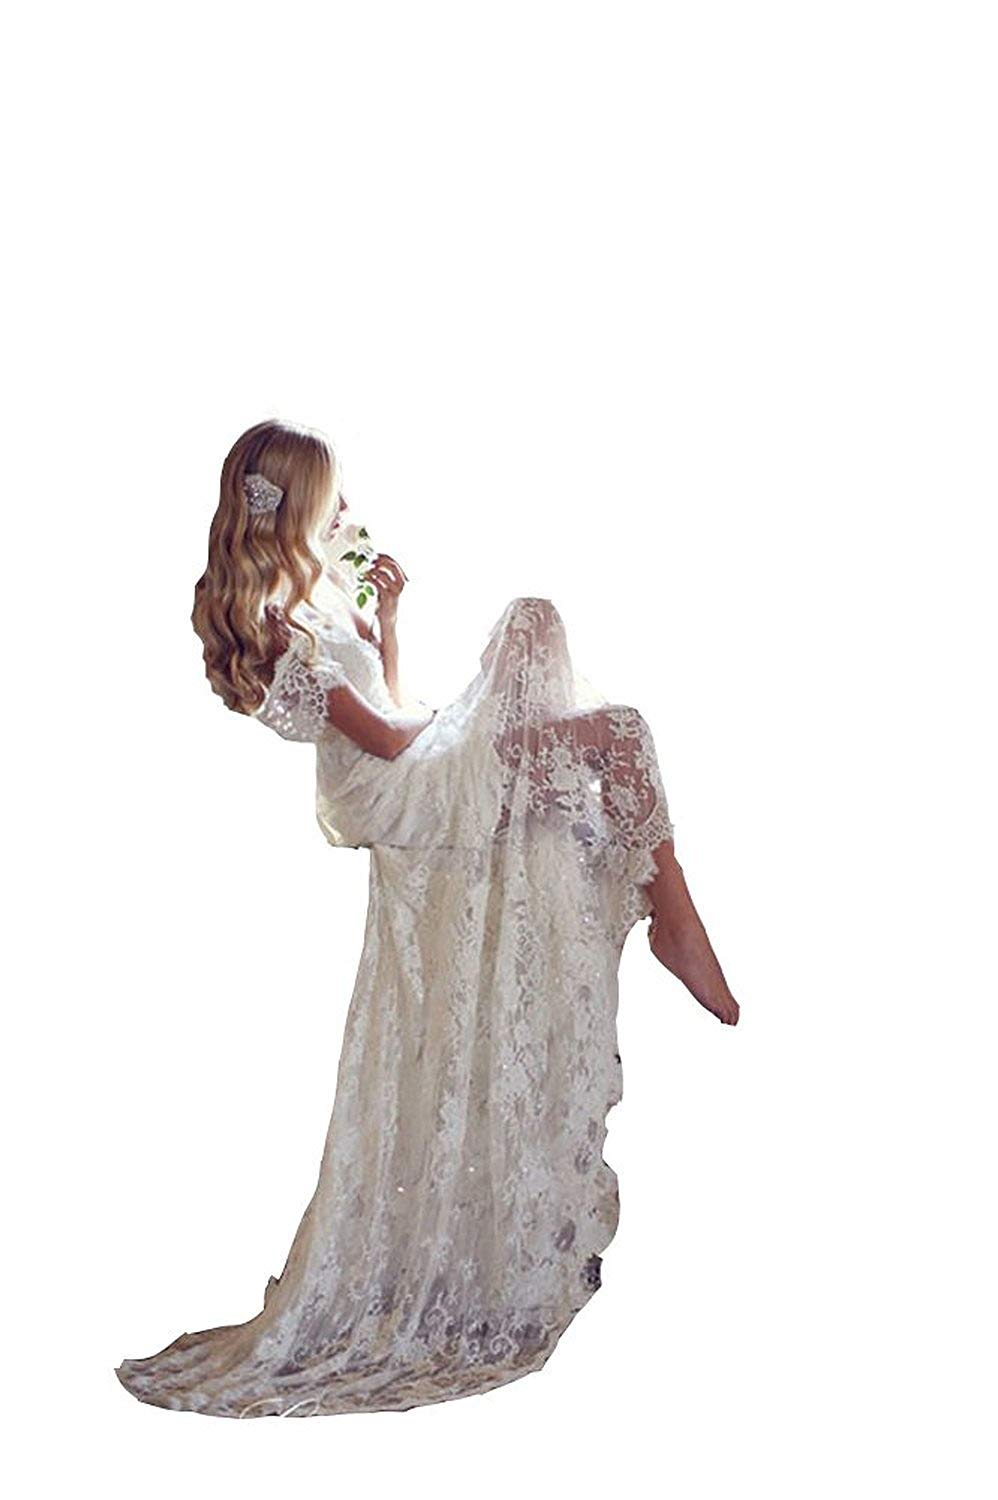 Fanciest Women's Lace Wedding Dresses 2017 Cap Sleeves Boho Wedding Dress